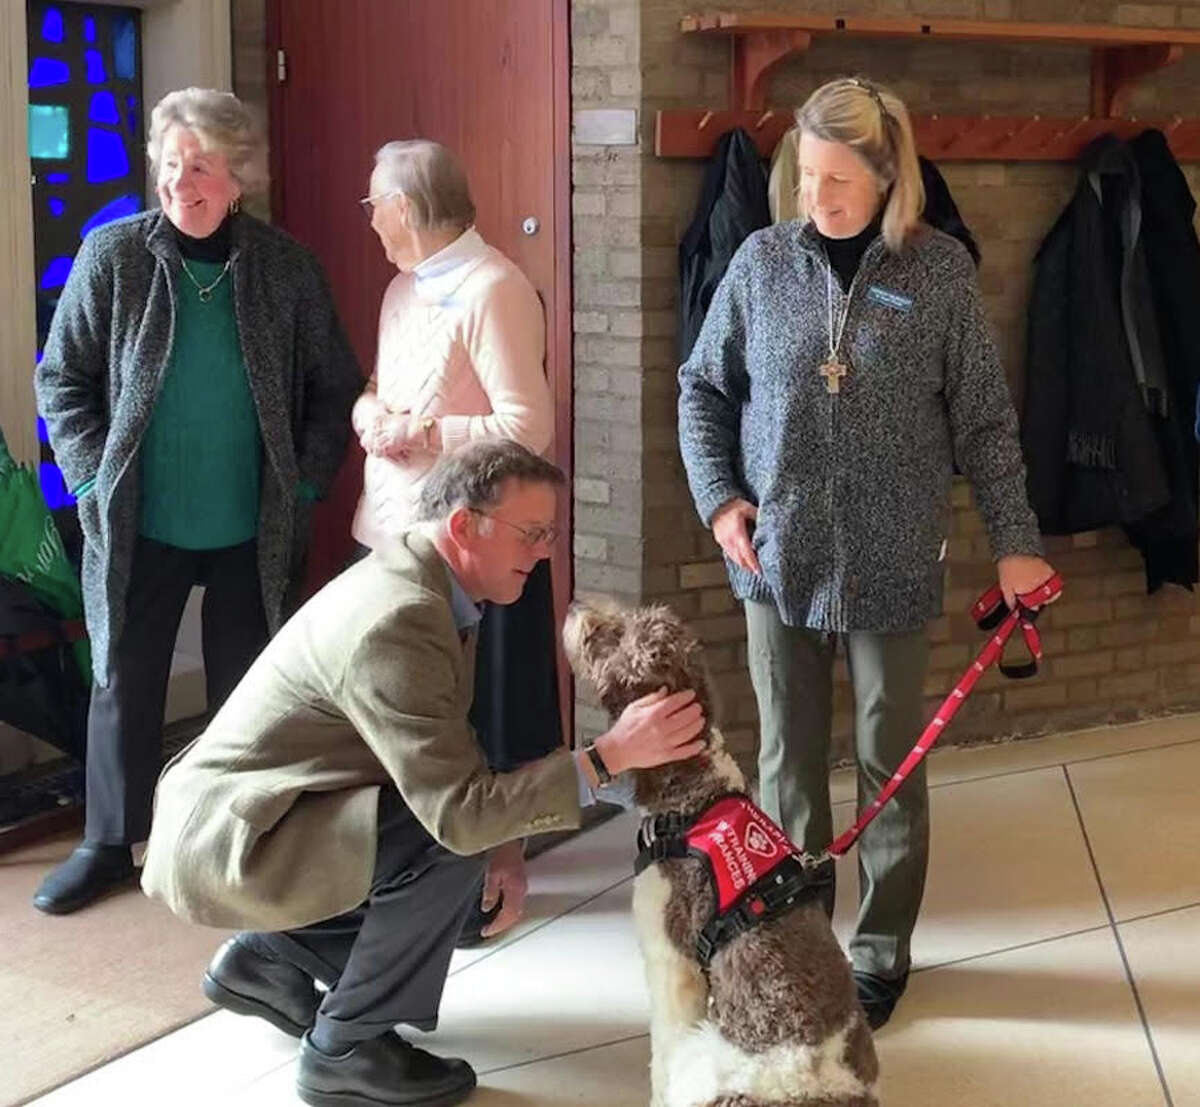 Nine-month-old Goldendoodle Frances is the Pastoral Pup in a new outreach ministry at St. Mark's Episcopal Church. She is shown with Lila Coleman, Jane Corcoran, Wendy Hilboldt and Jim Hilboldt.